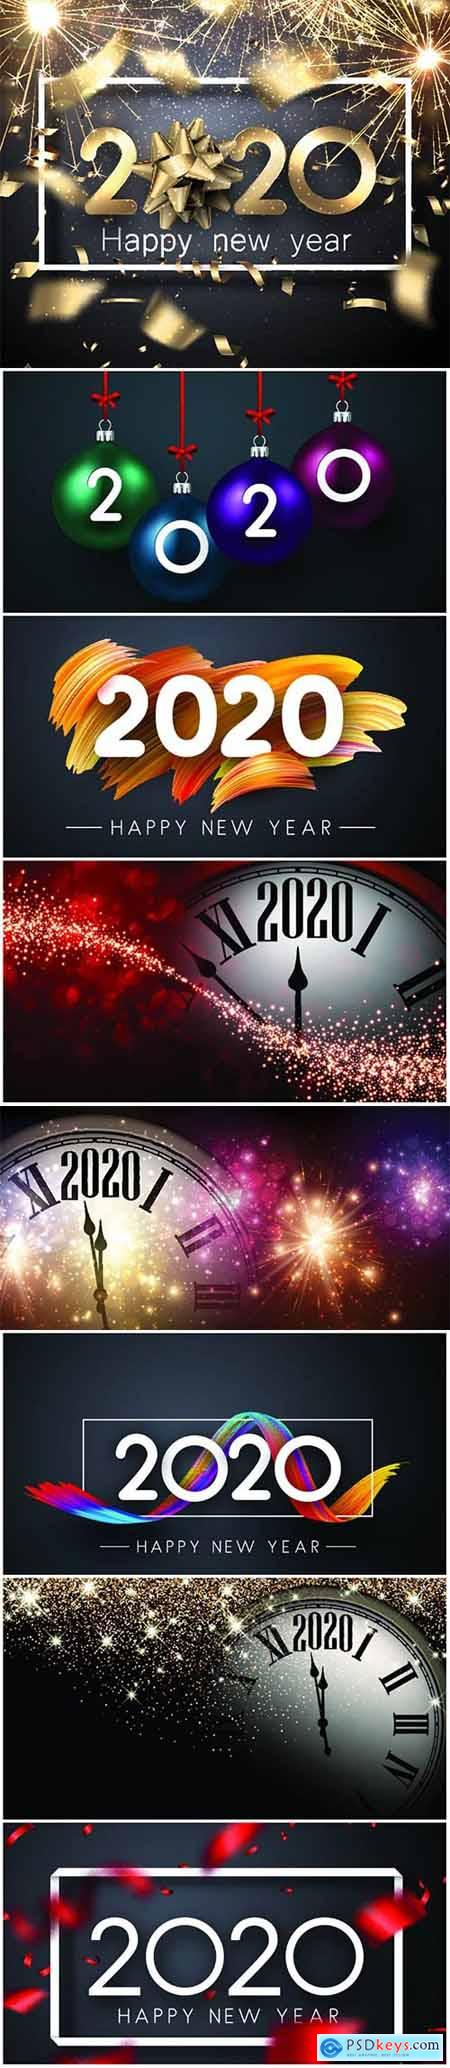 Happy New Year 2020 card with sparklers, bow and blurred golden confetti